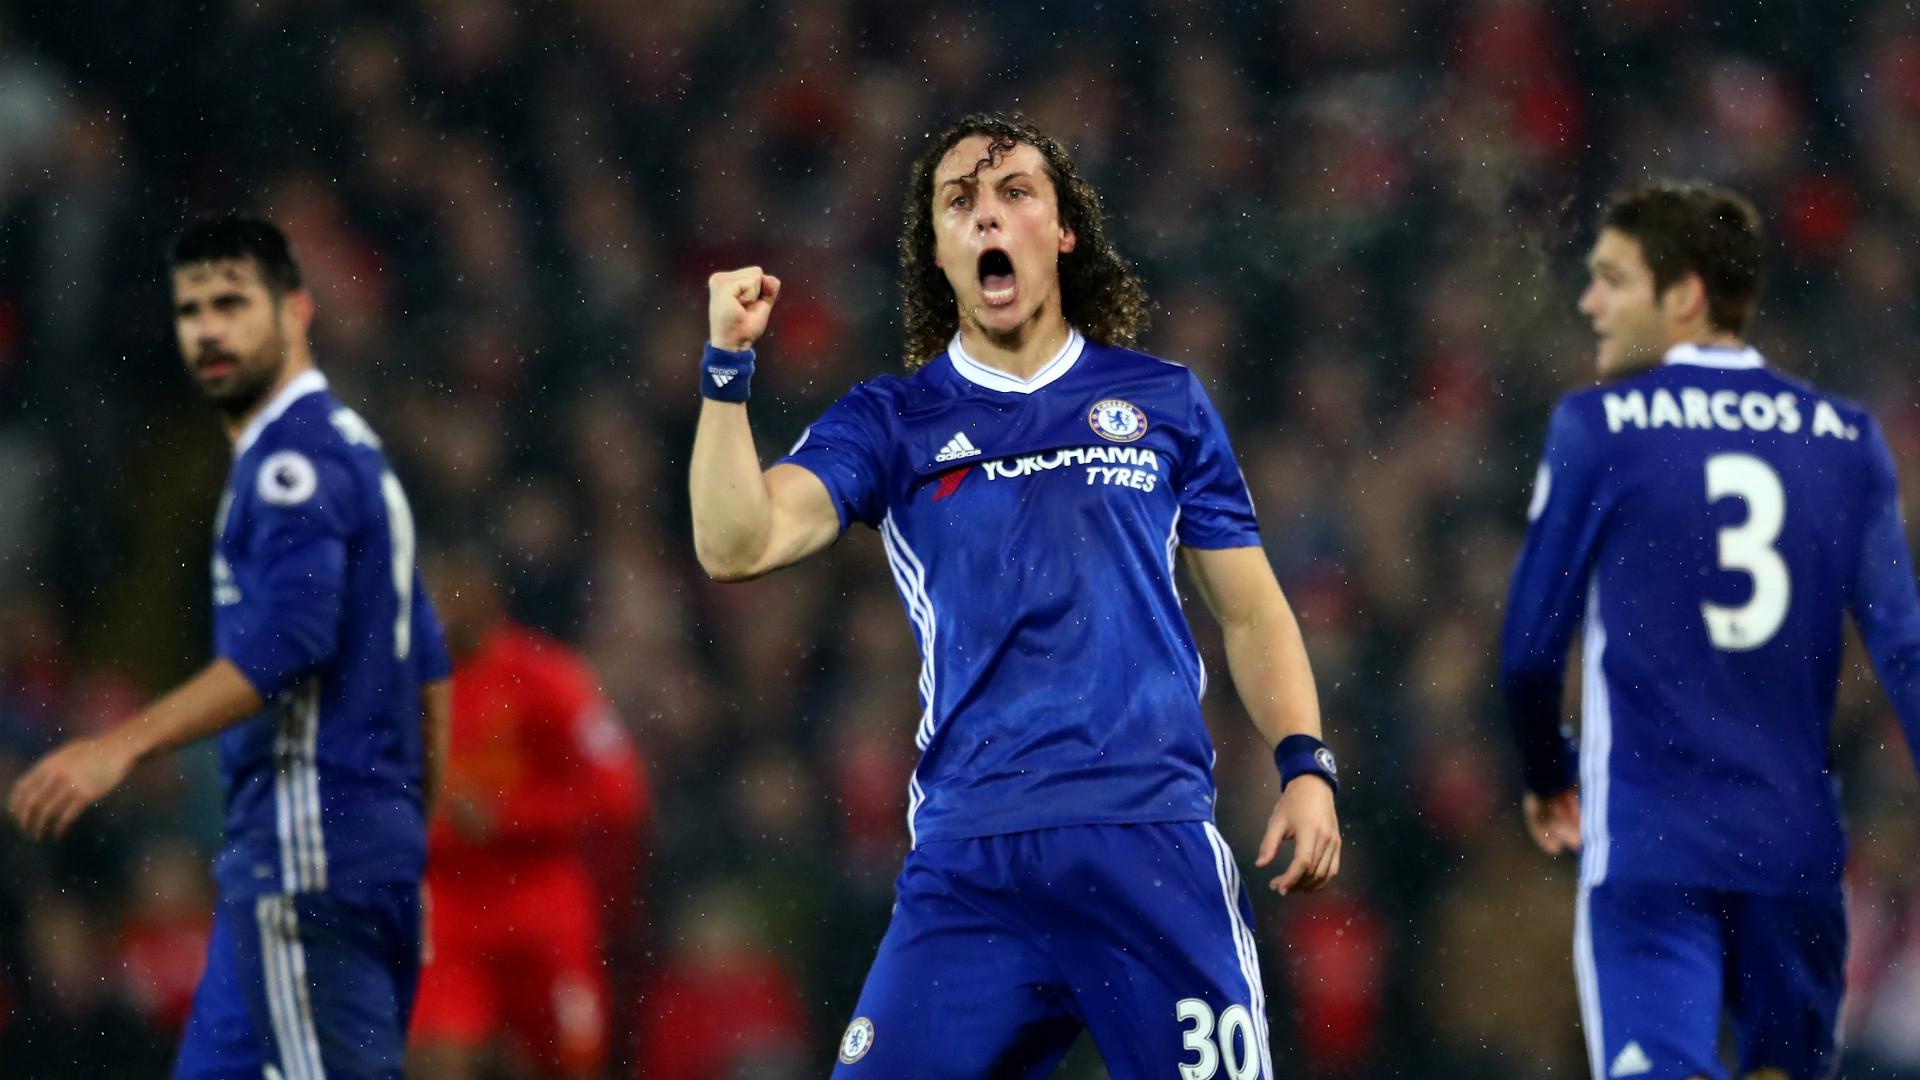 David Luiz is entering his prime at Chelsea insists Elliott